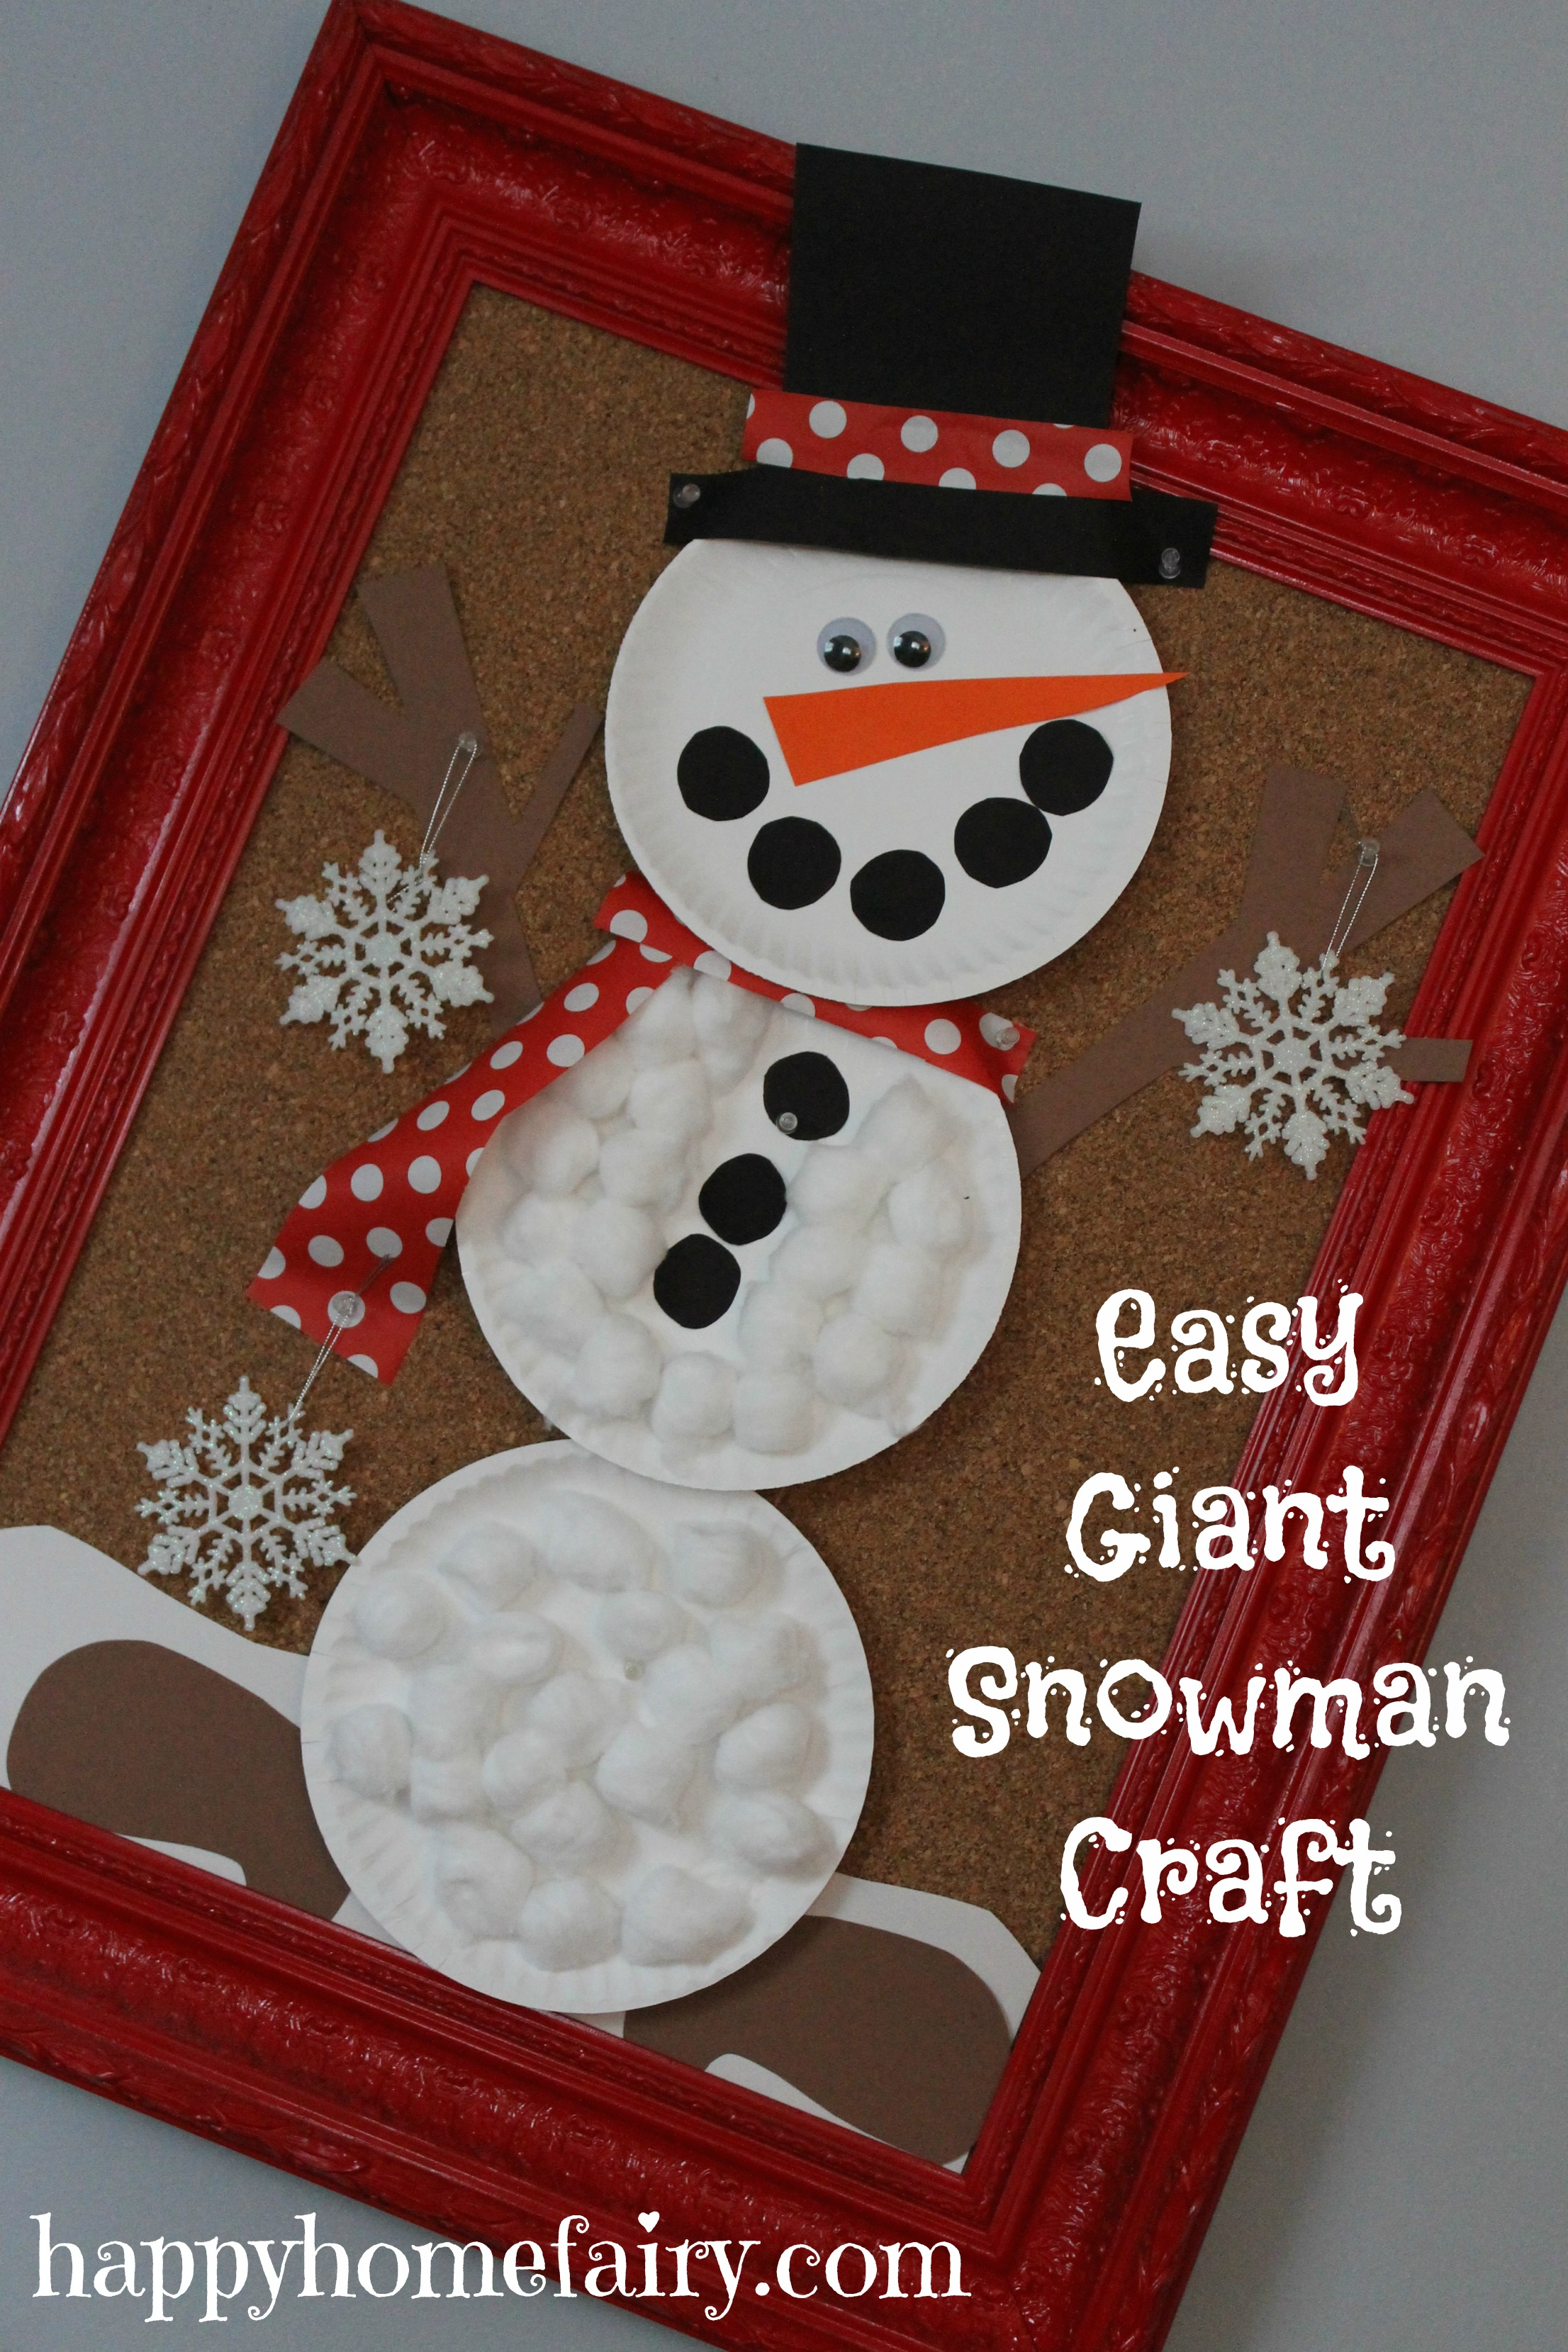 Delightful Snowman Craft Ideas For Kids Part - 8: Happy Home Fairy